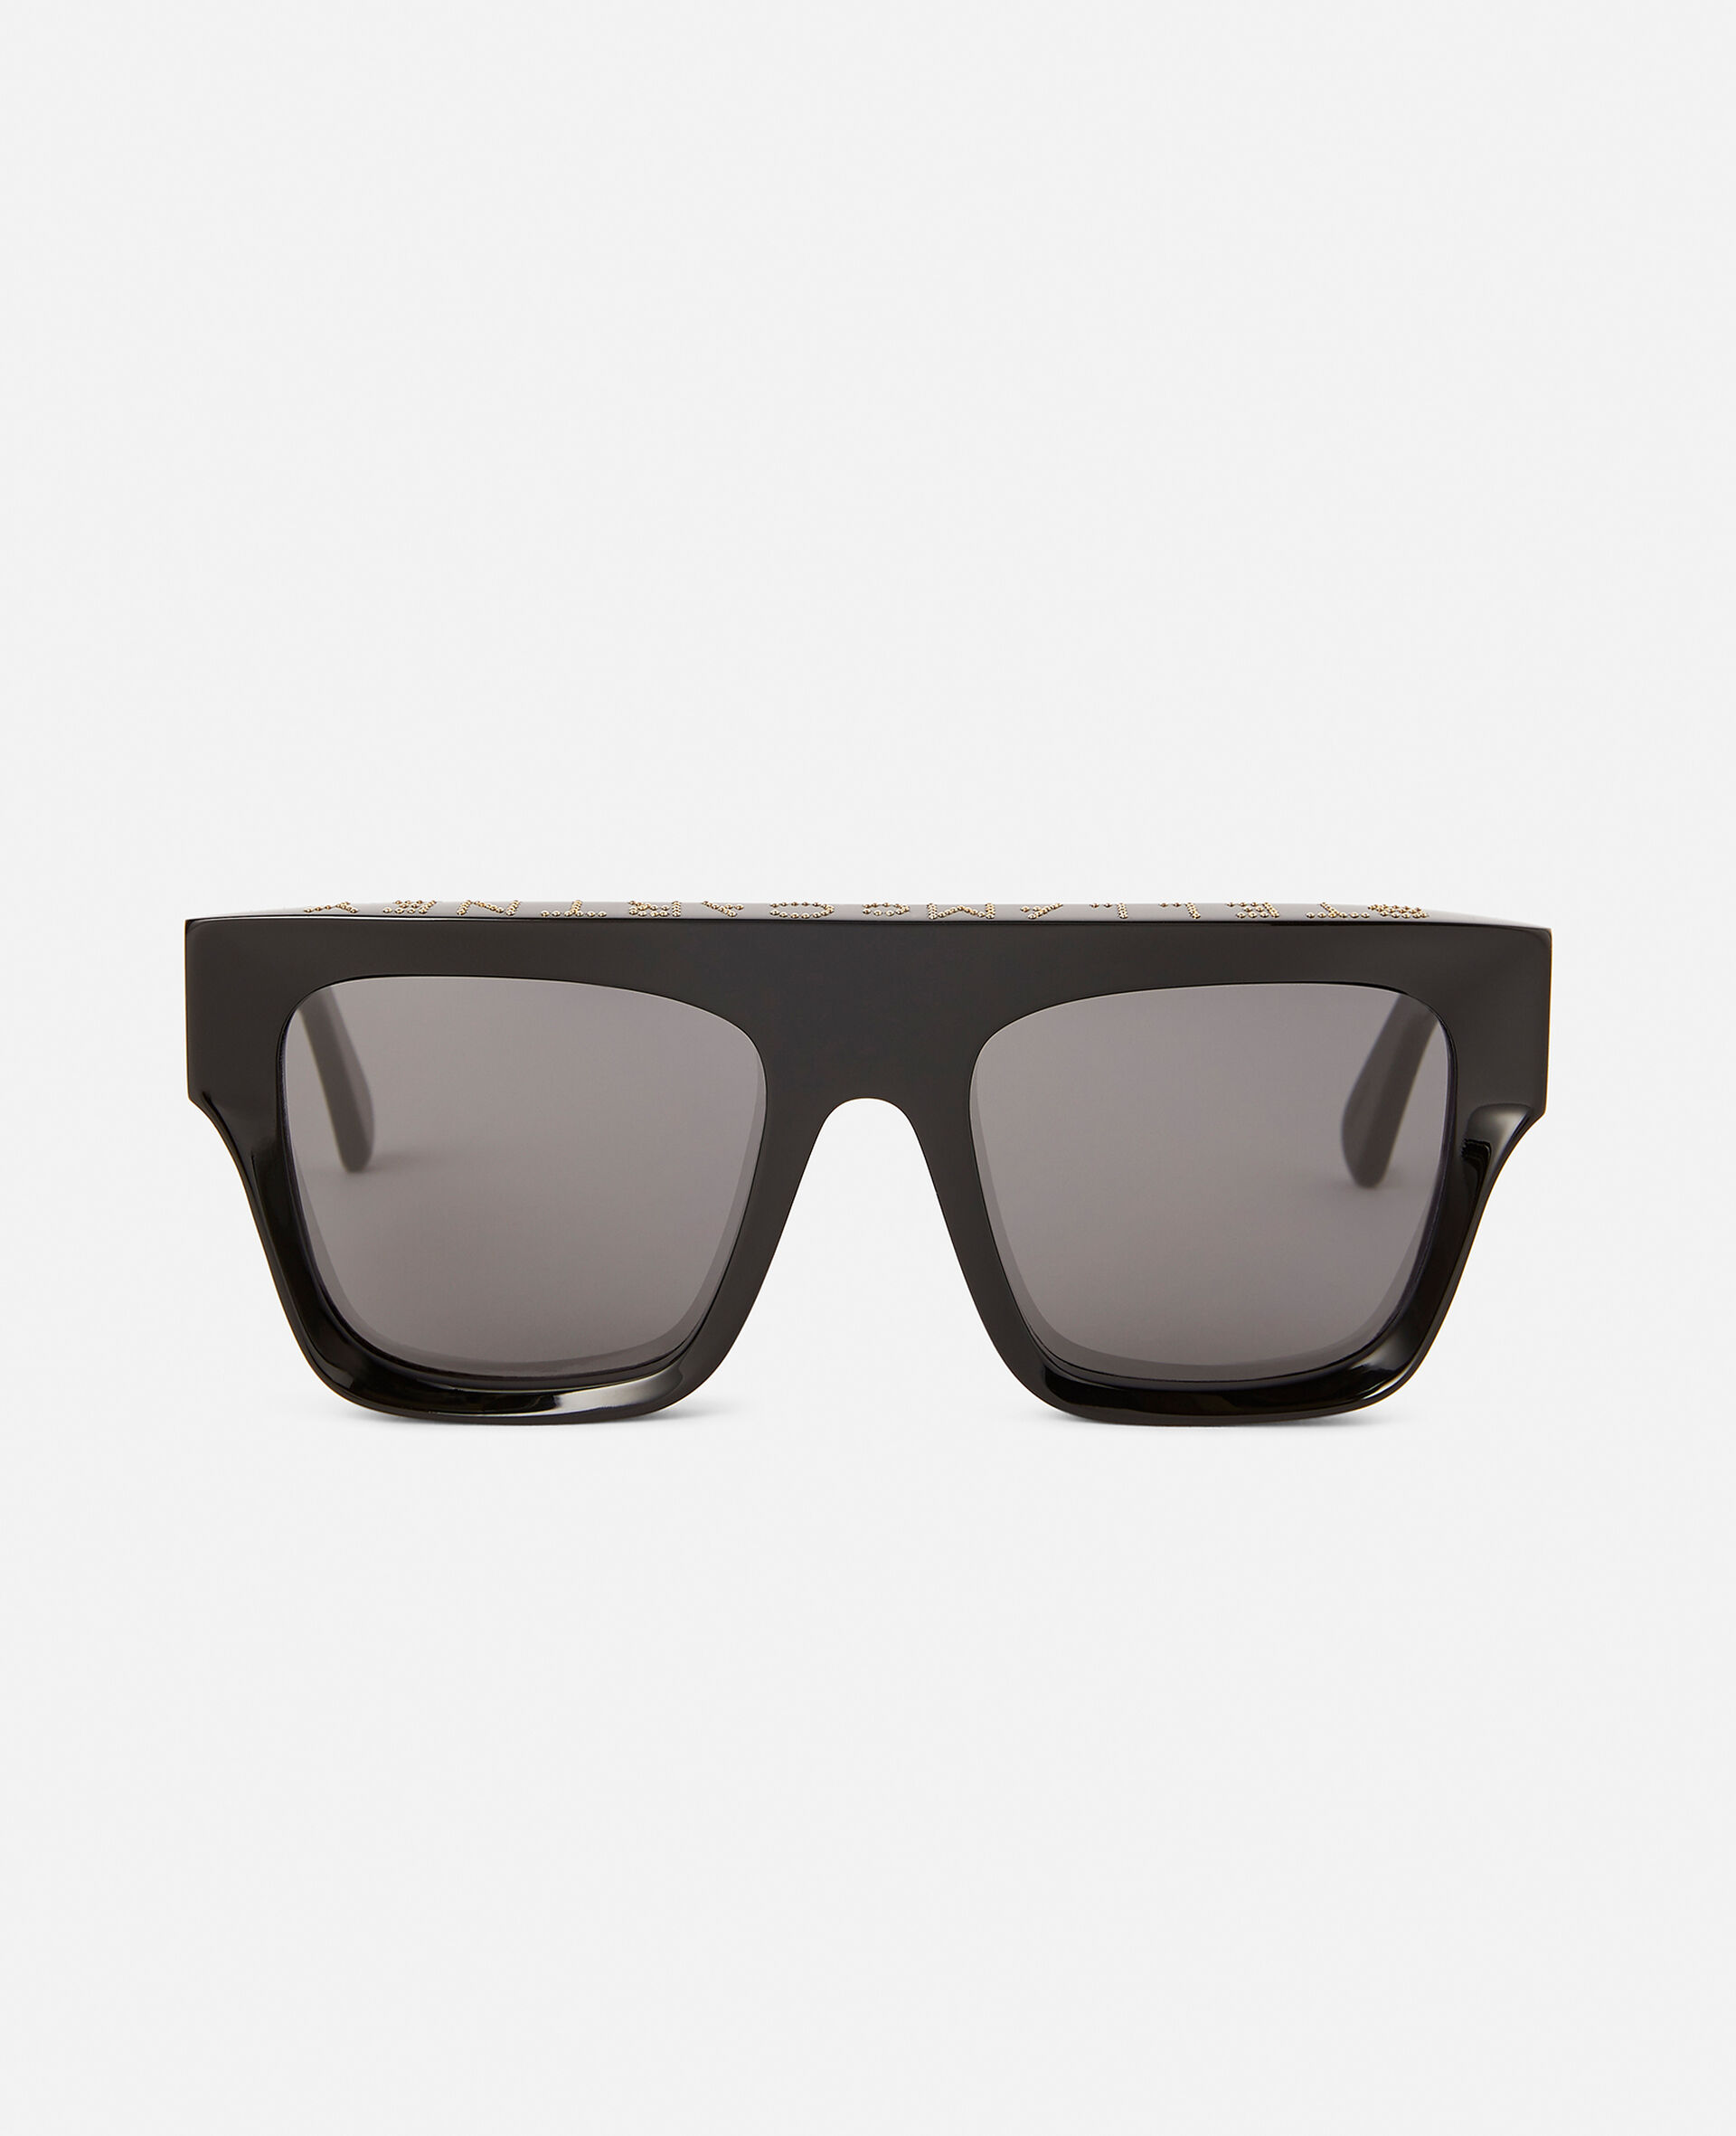 Shiny Black Square Sunglasses-Black-large image number 5